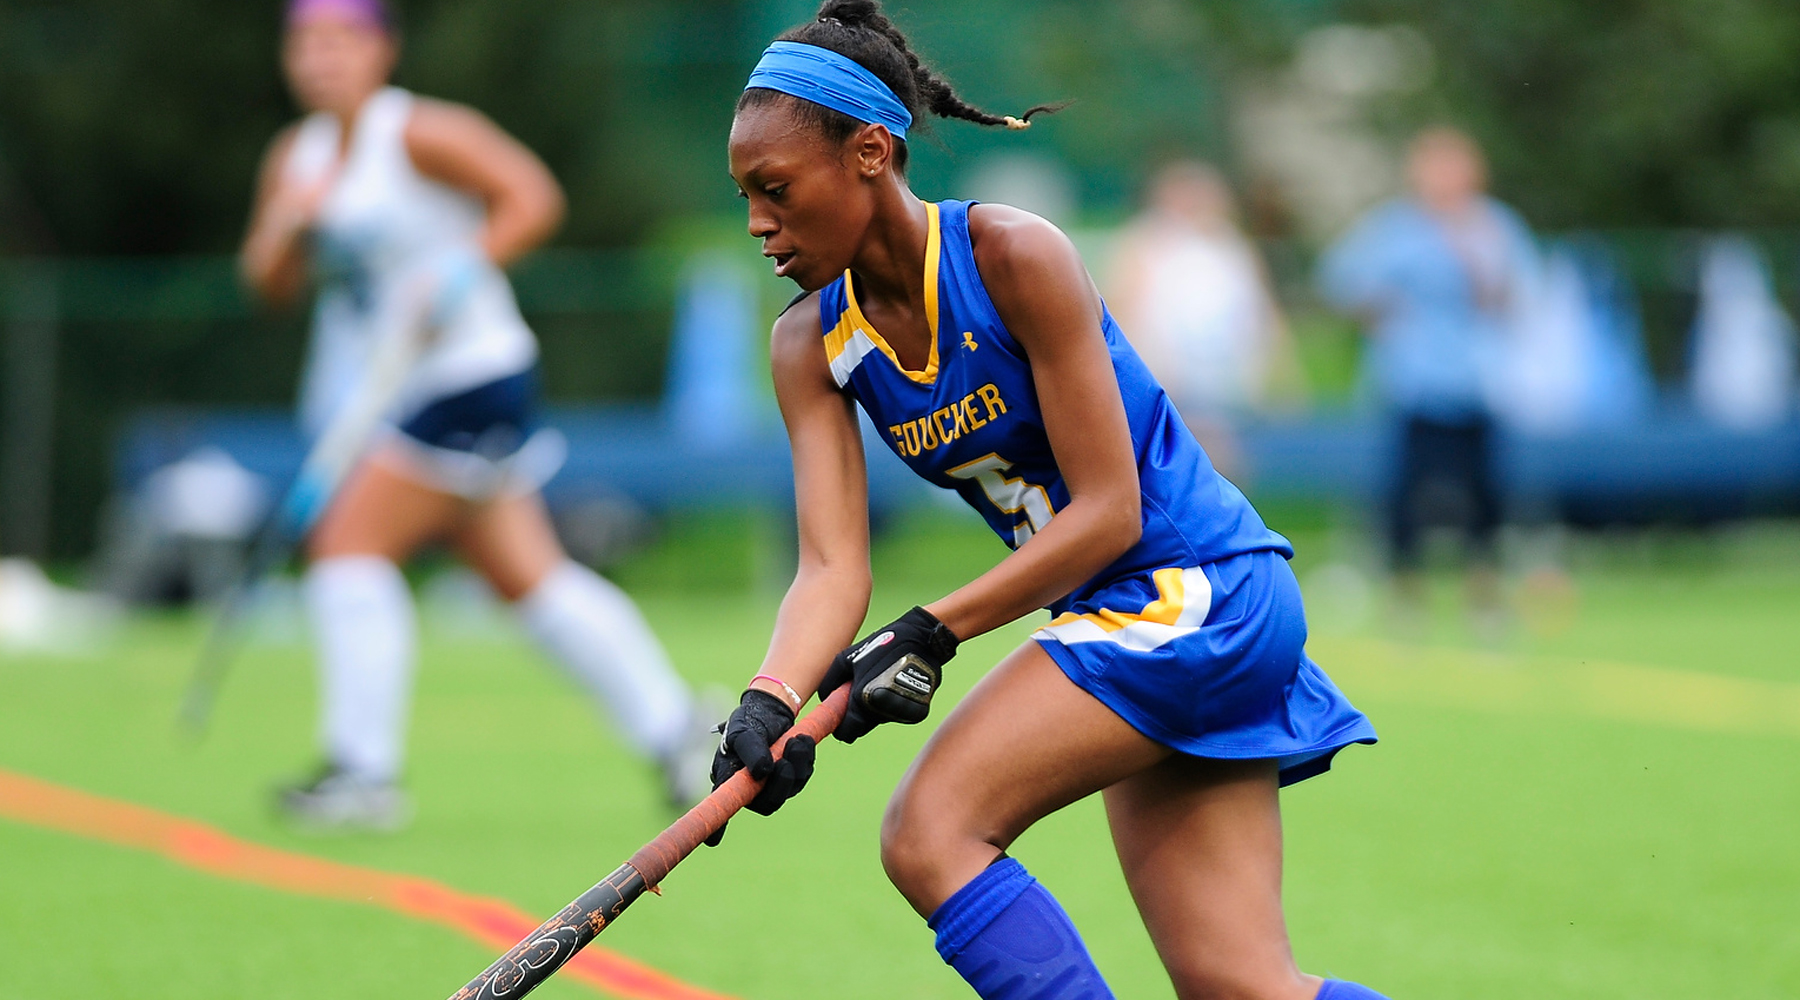 Belin Nets Yet Another Hat Trick, as Field Hockey Knocks Off Immaculata, 6-3